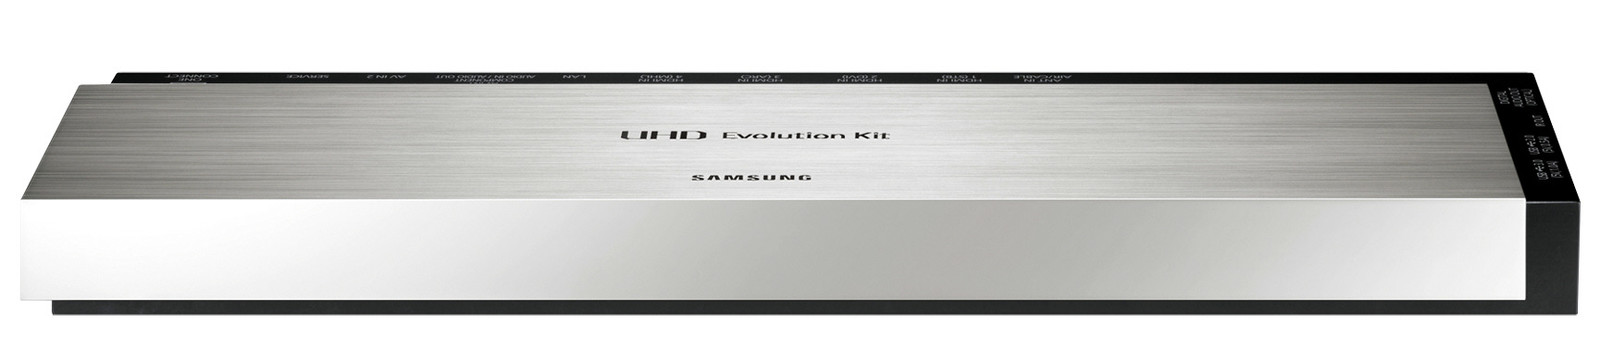 Samsung SEK-2500U UHD Evolution Kit, front view.